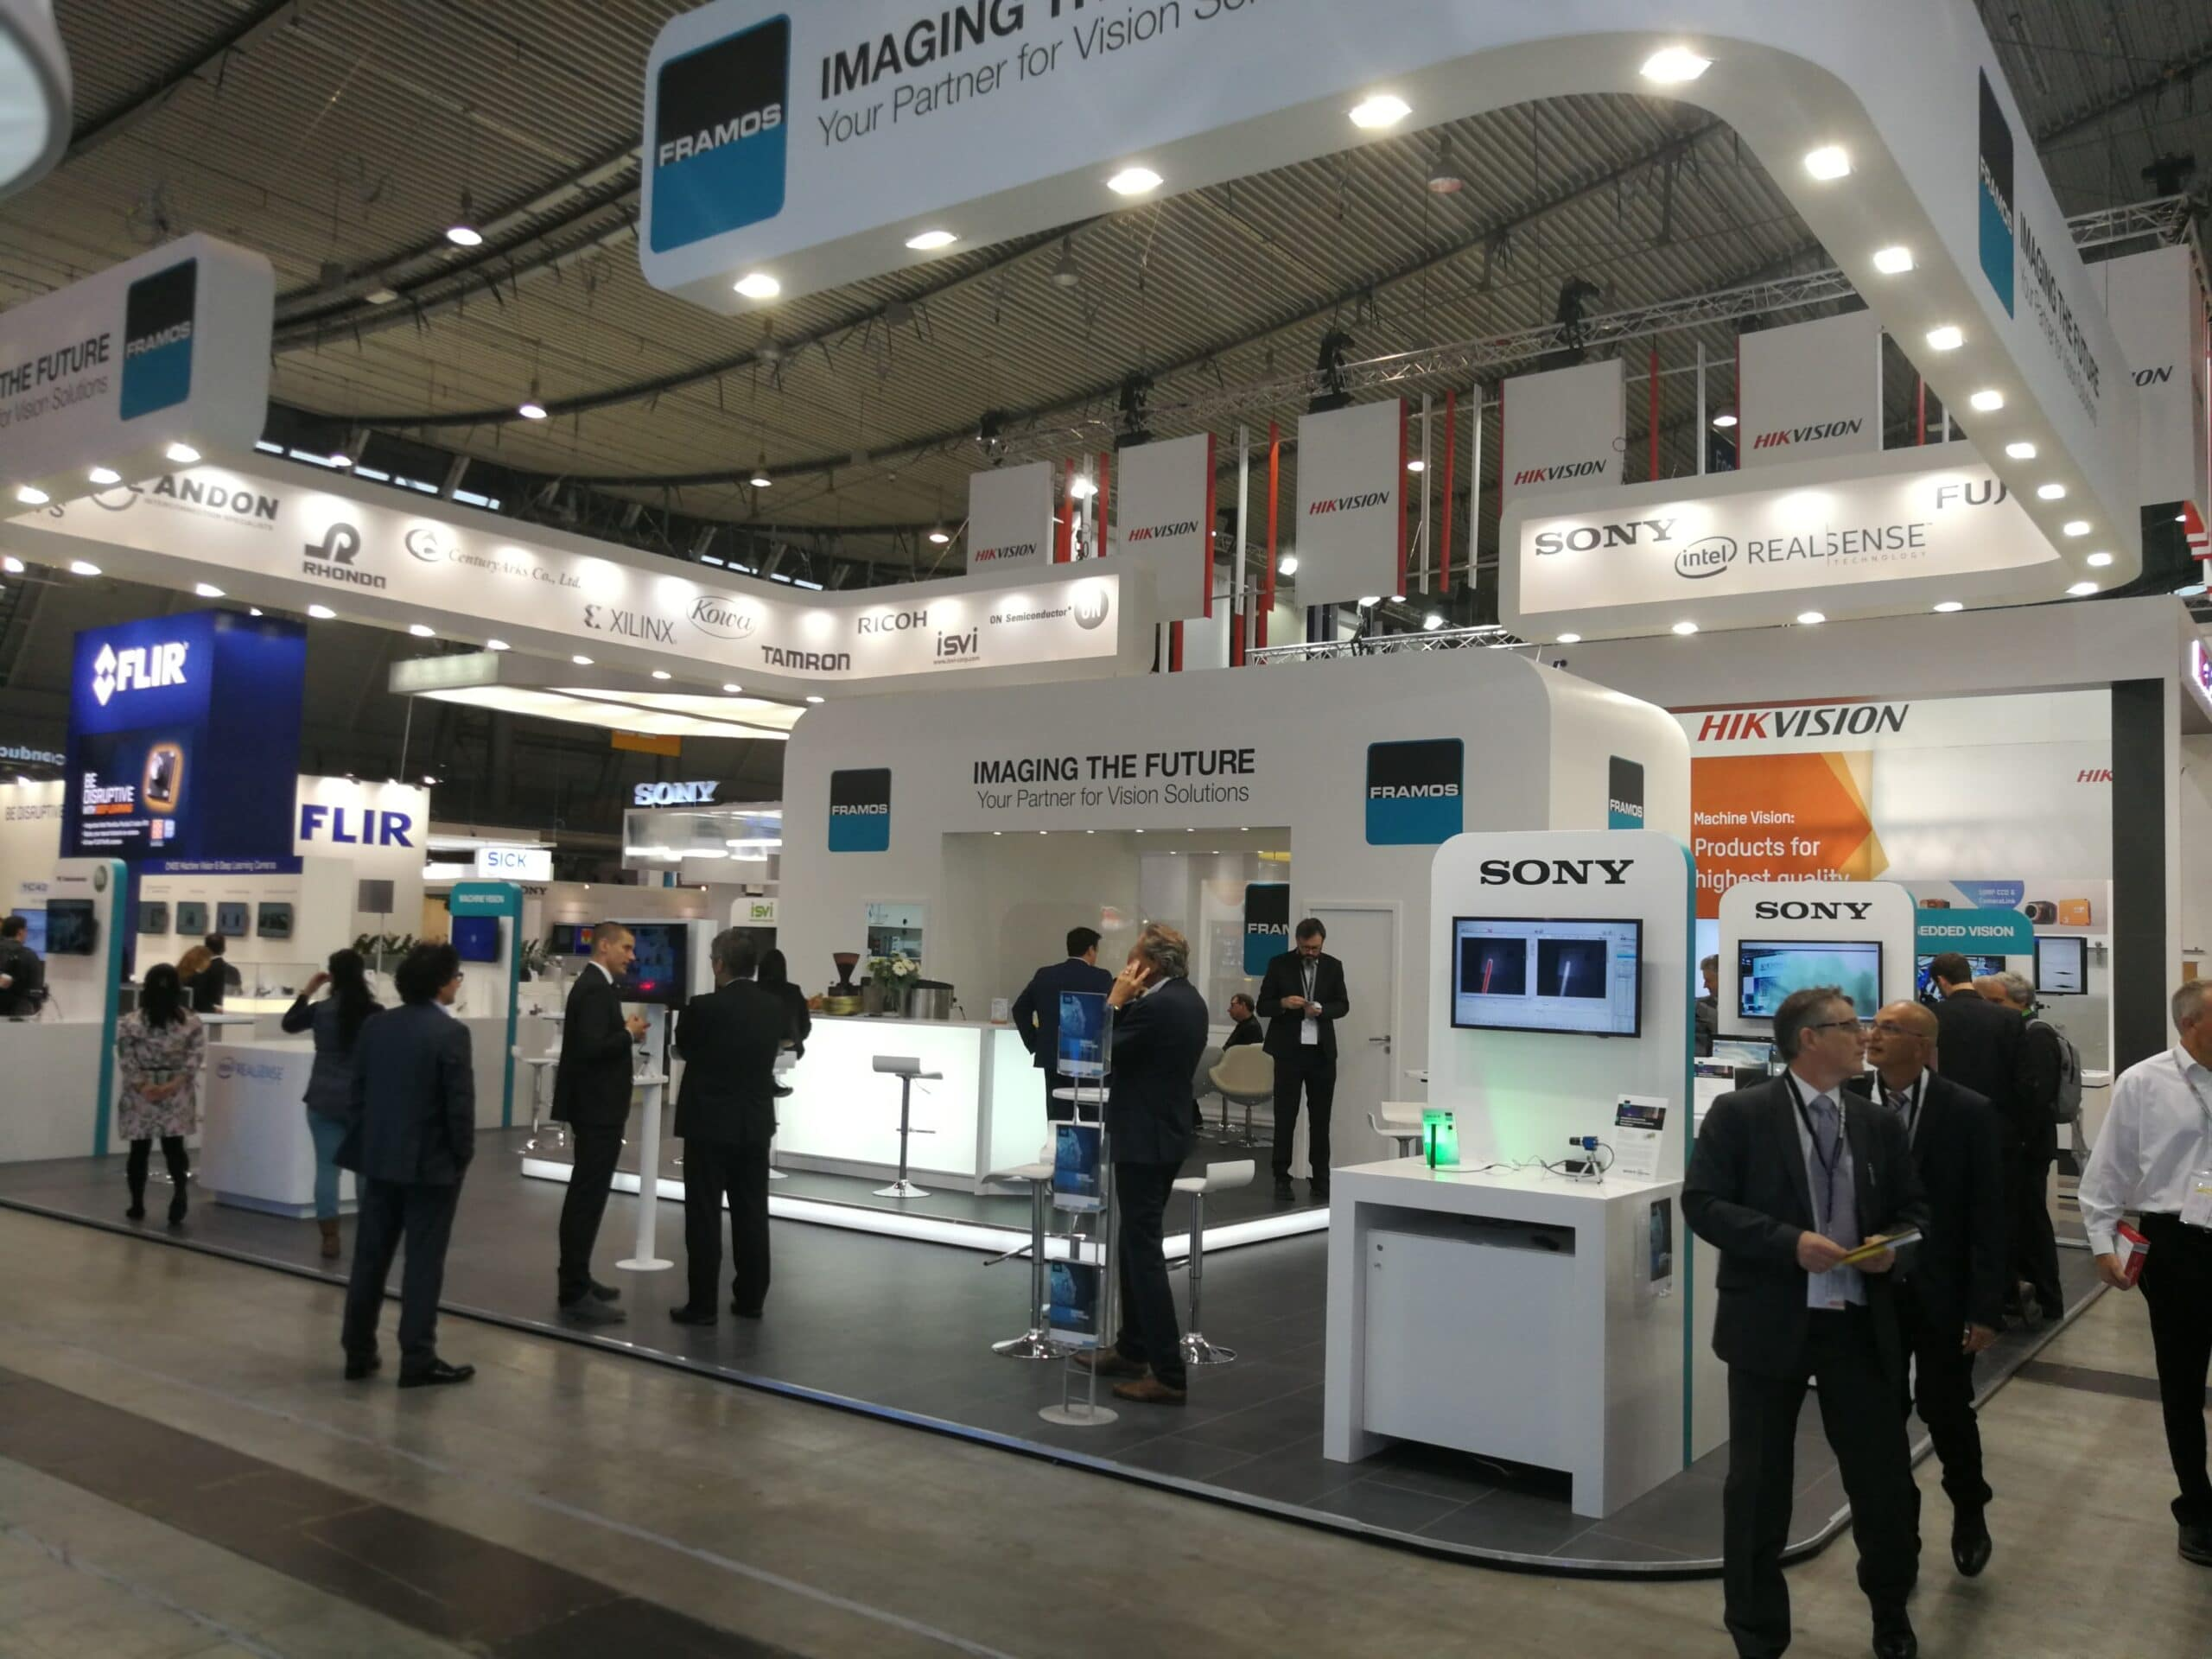 FRAMOS Showcases ToF, SWIR, and GMSL2 Among Other Leading Edge Technologies and Live Demos at the Vision Show 2021